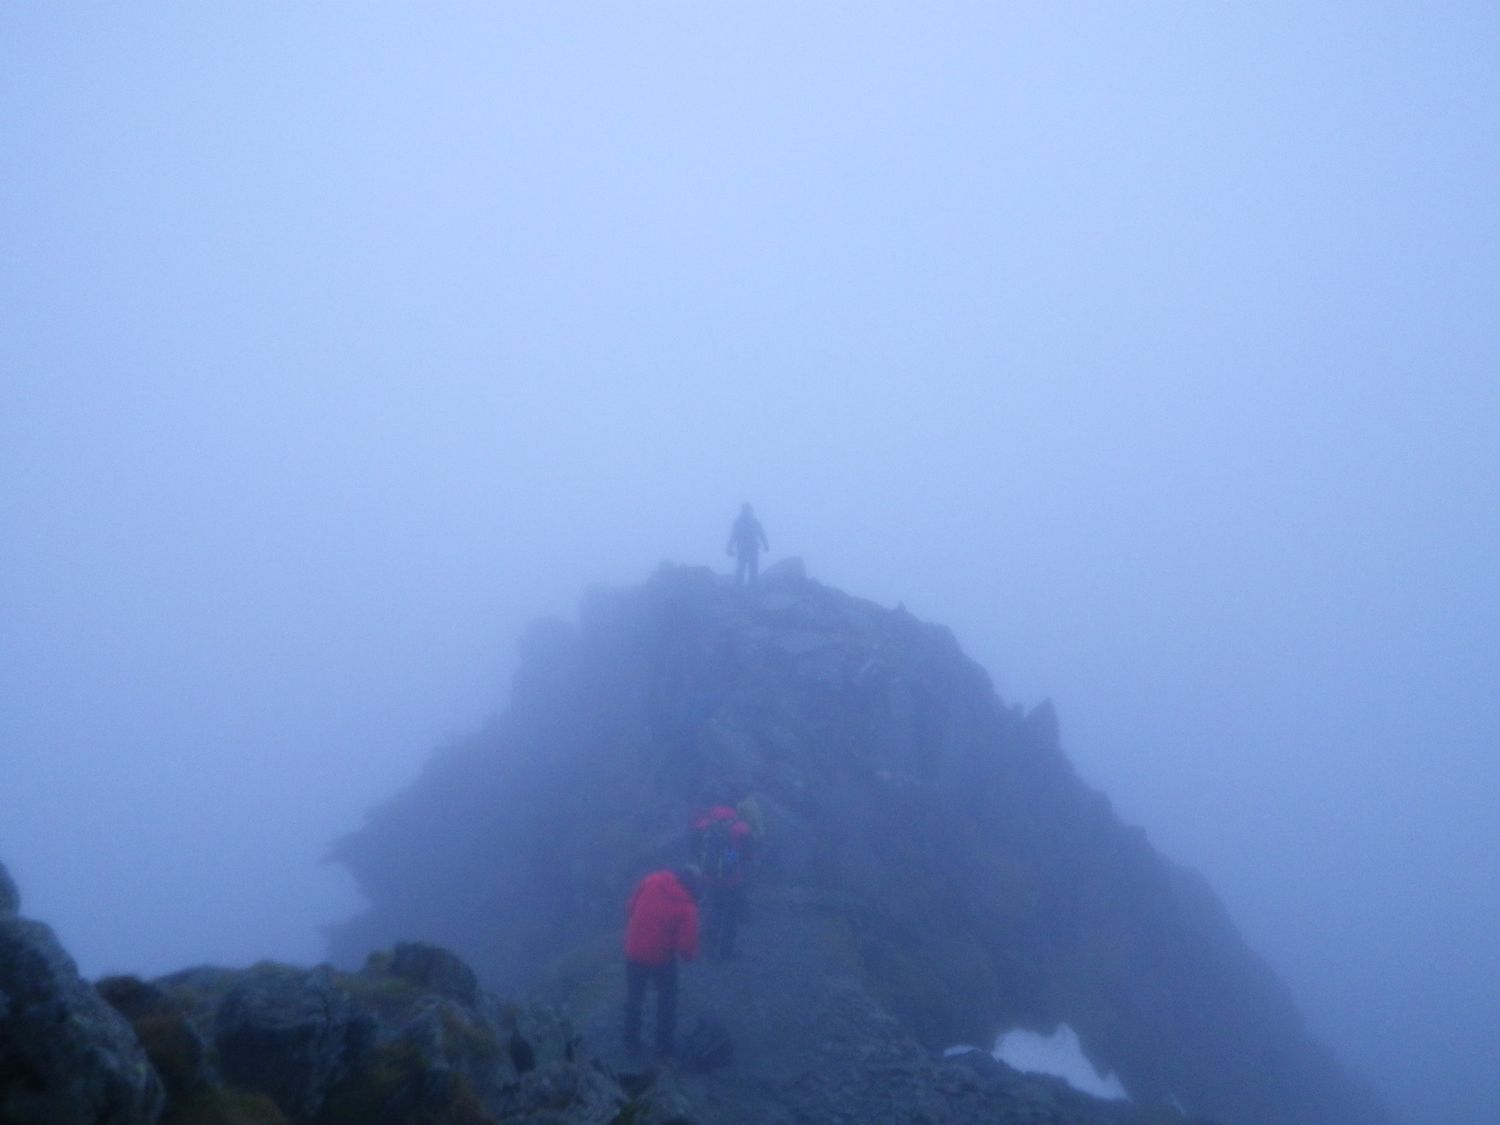 Mountain leader training candidates navigating in limited visibility